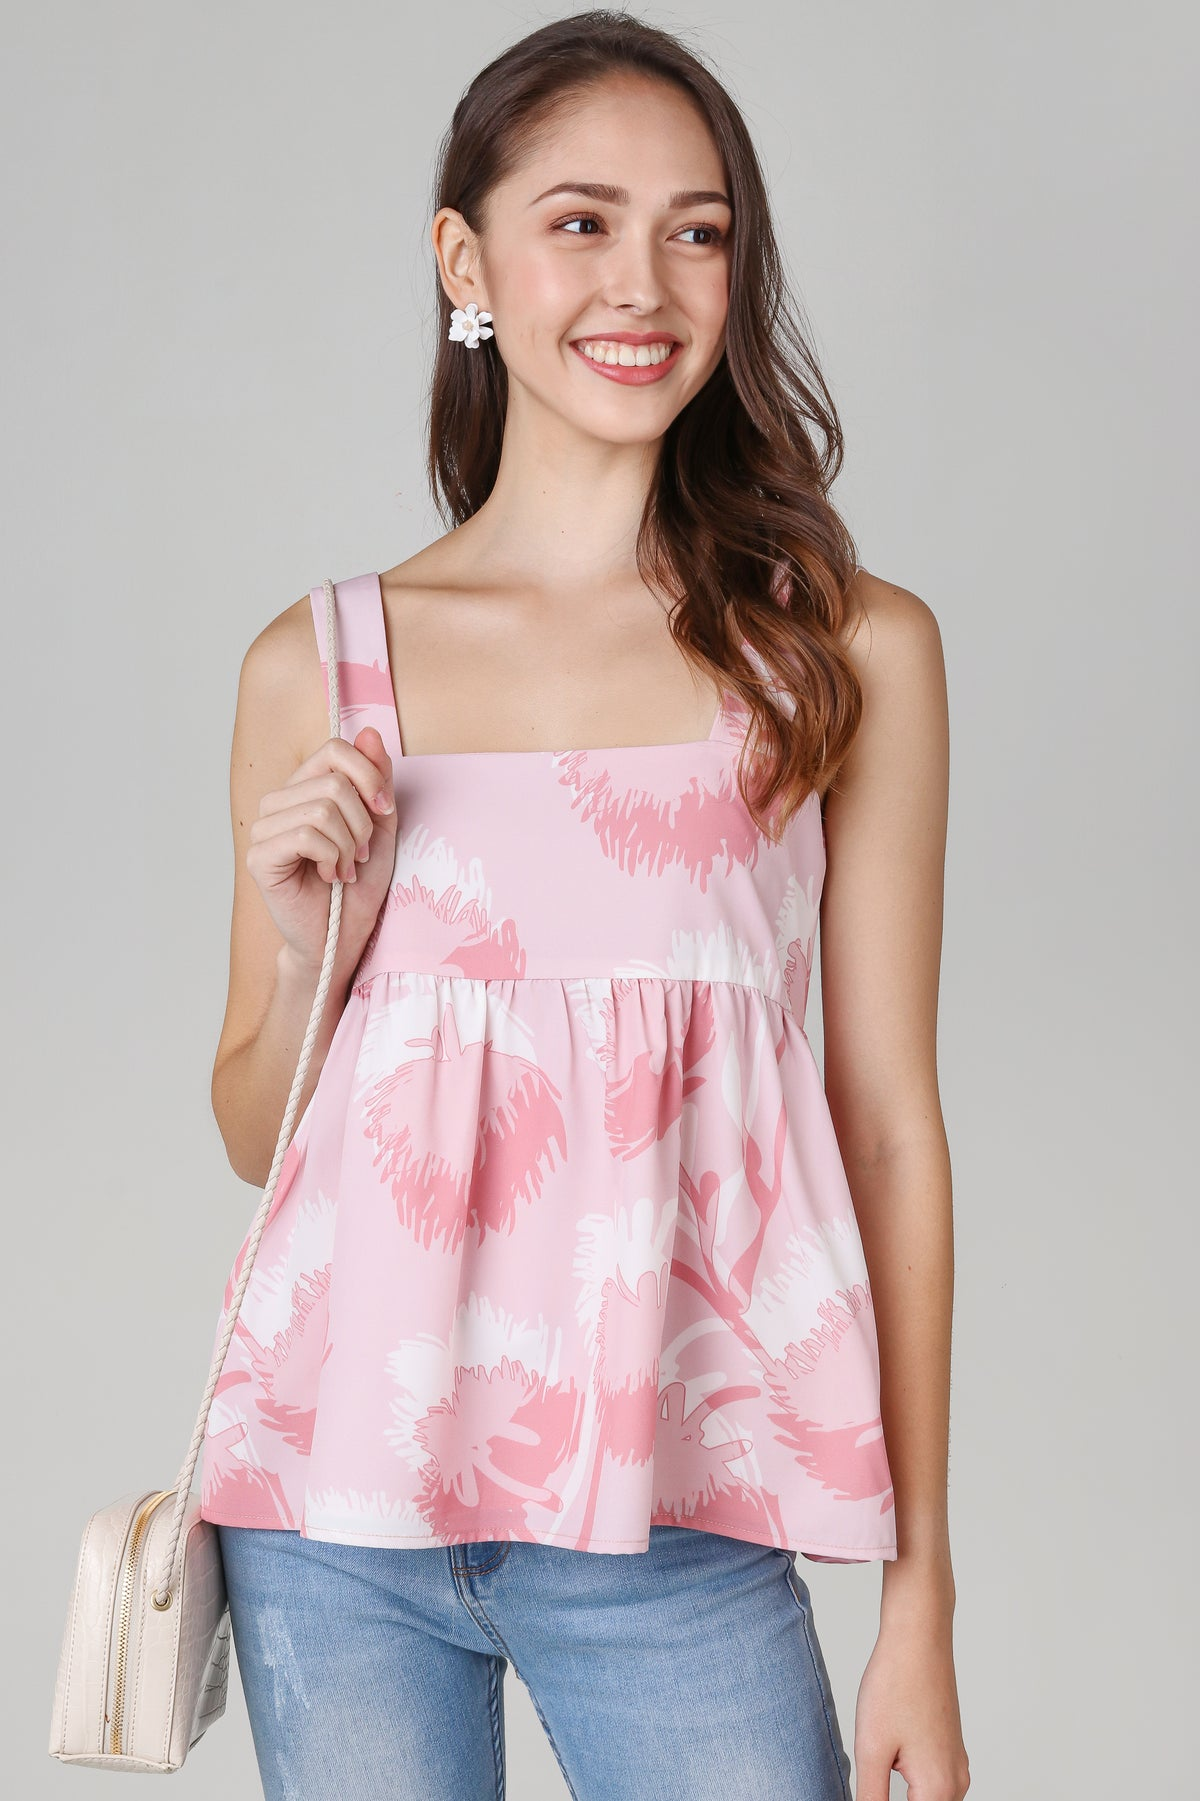 Dandelions Babydoll Top in Pink